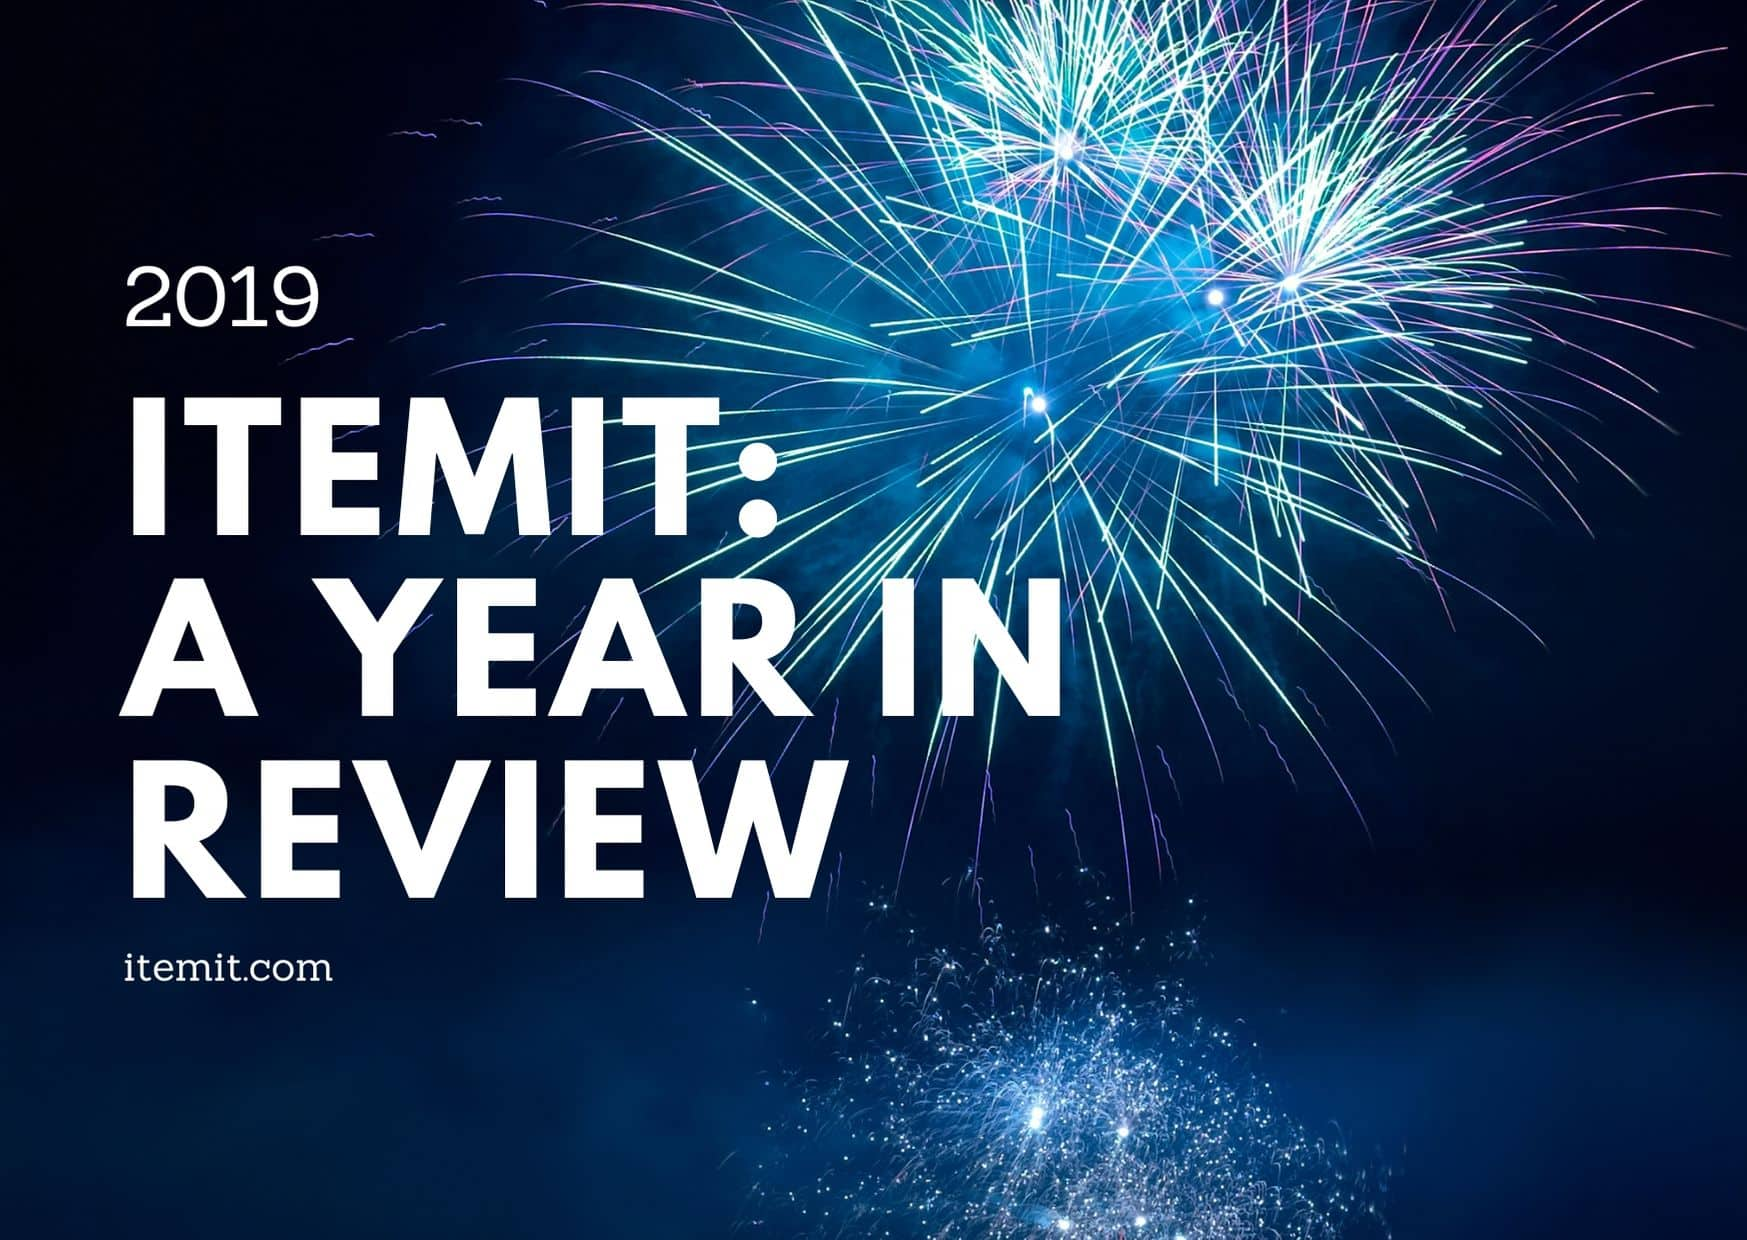 itemit asset tracking software a year in review